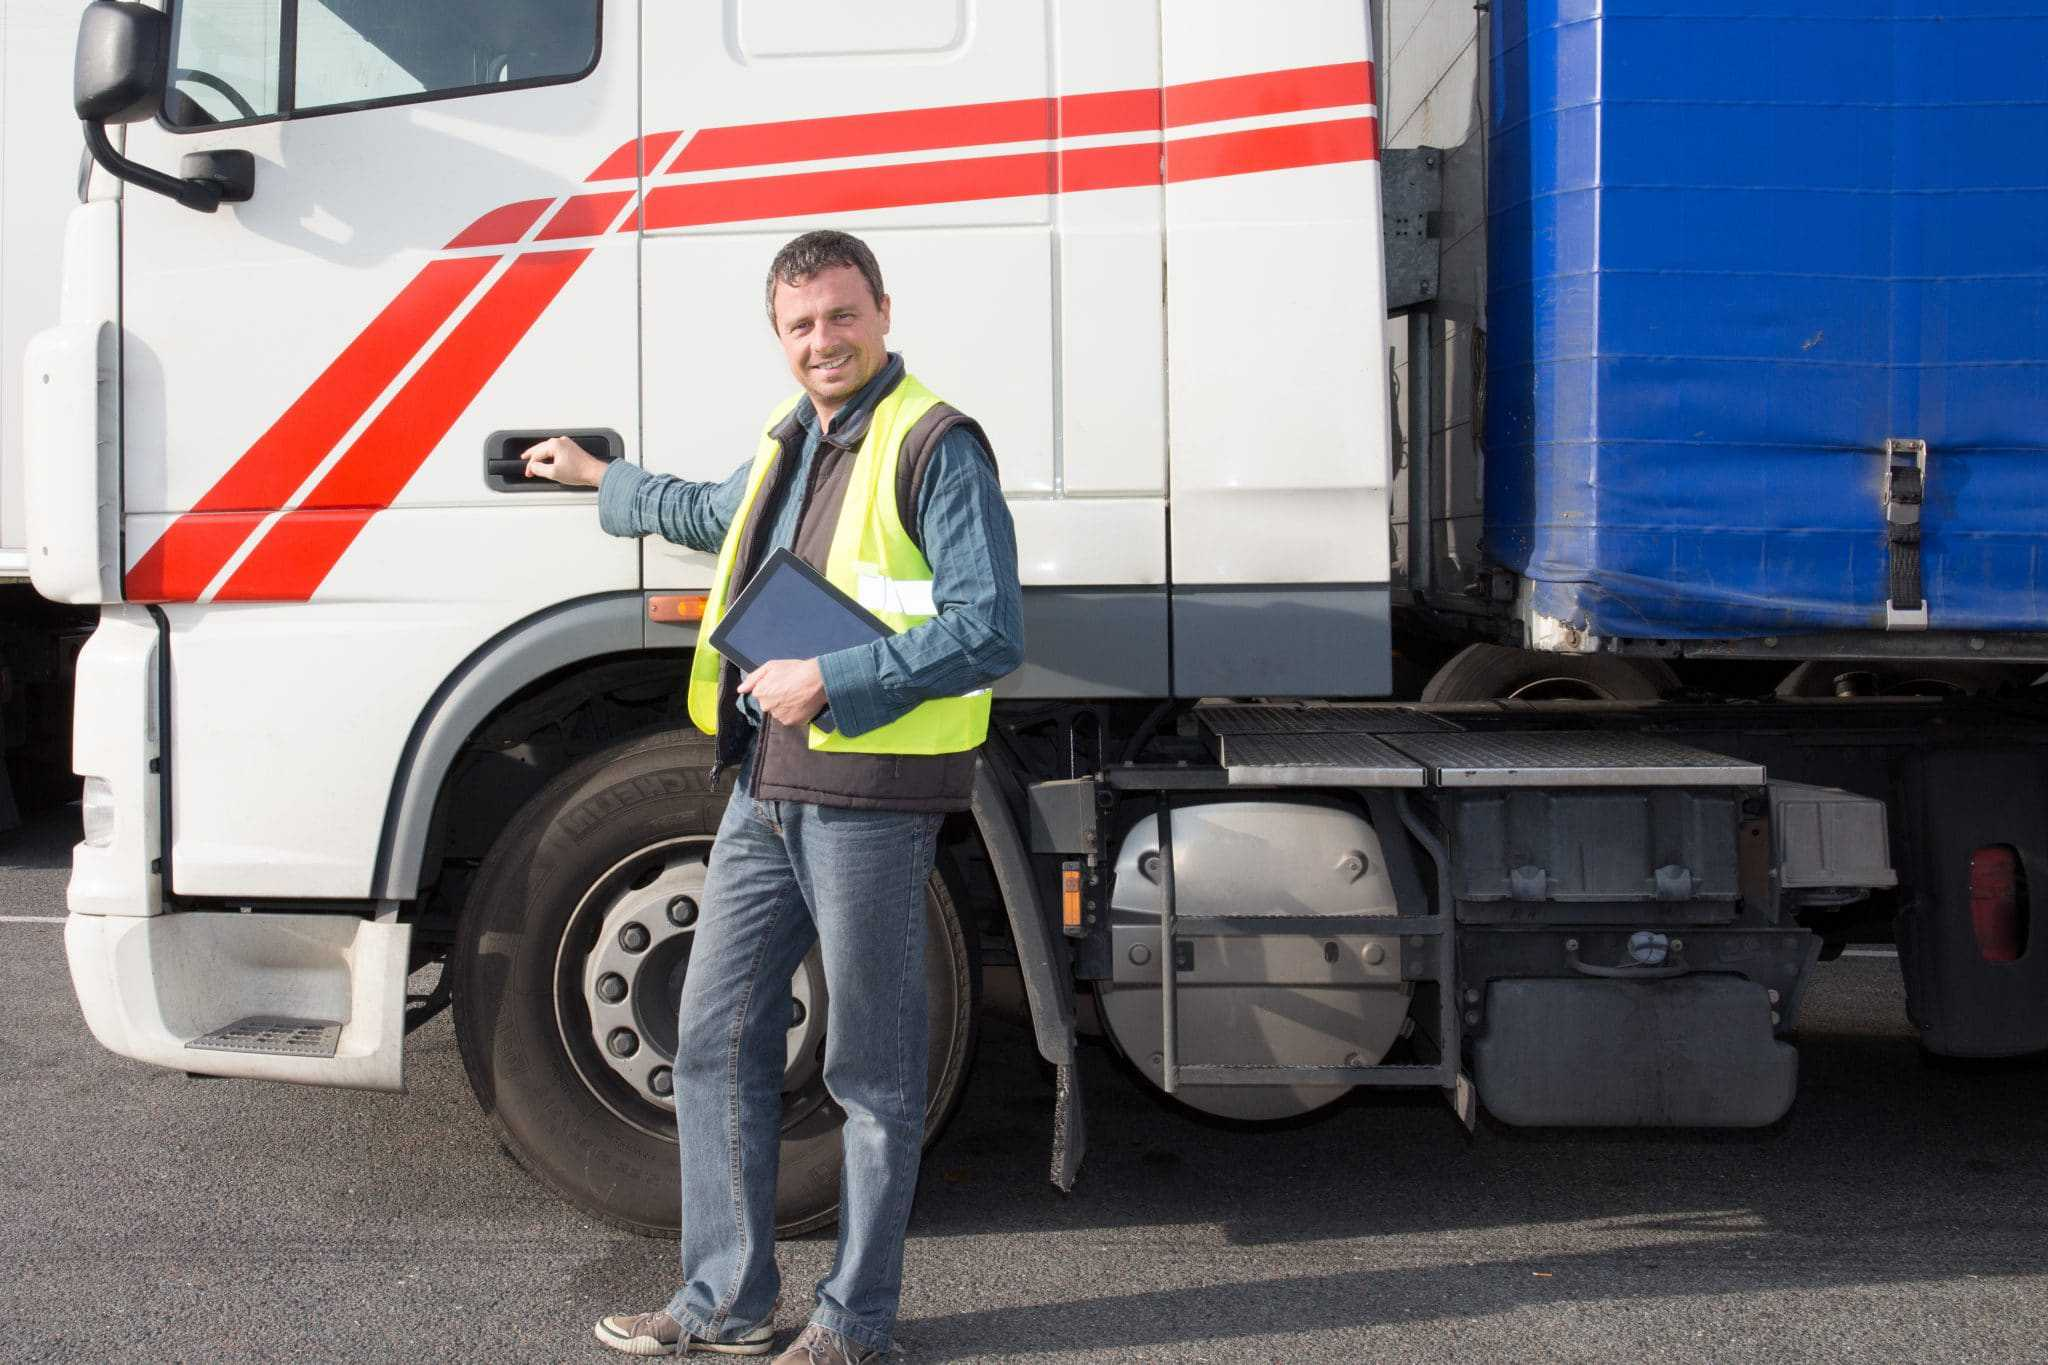 Is HGV driving a good way to earn a living in the UK?